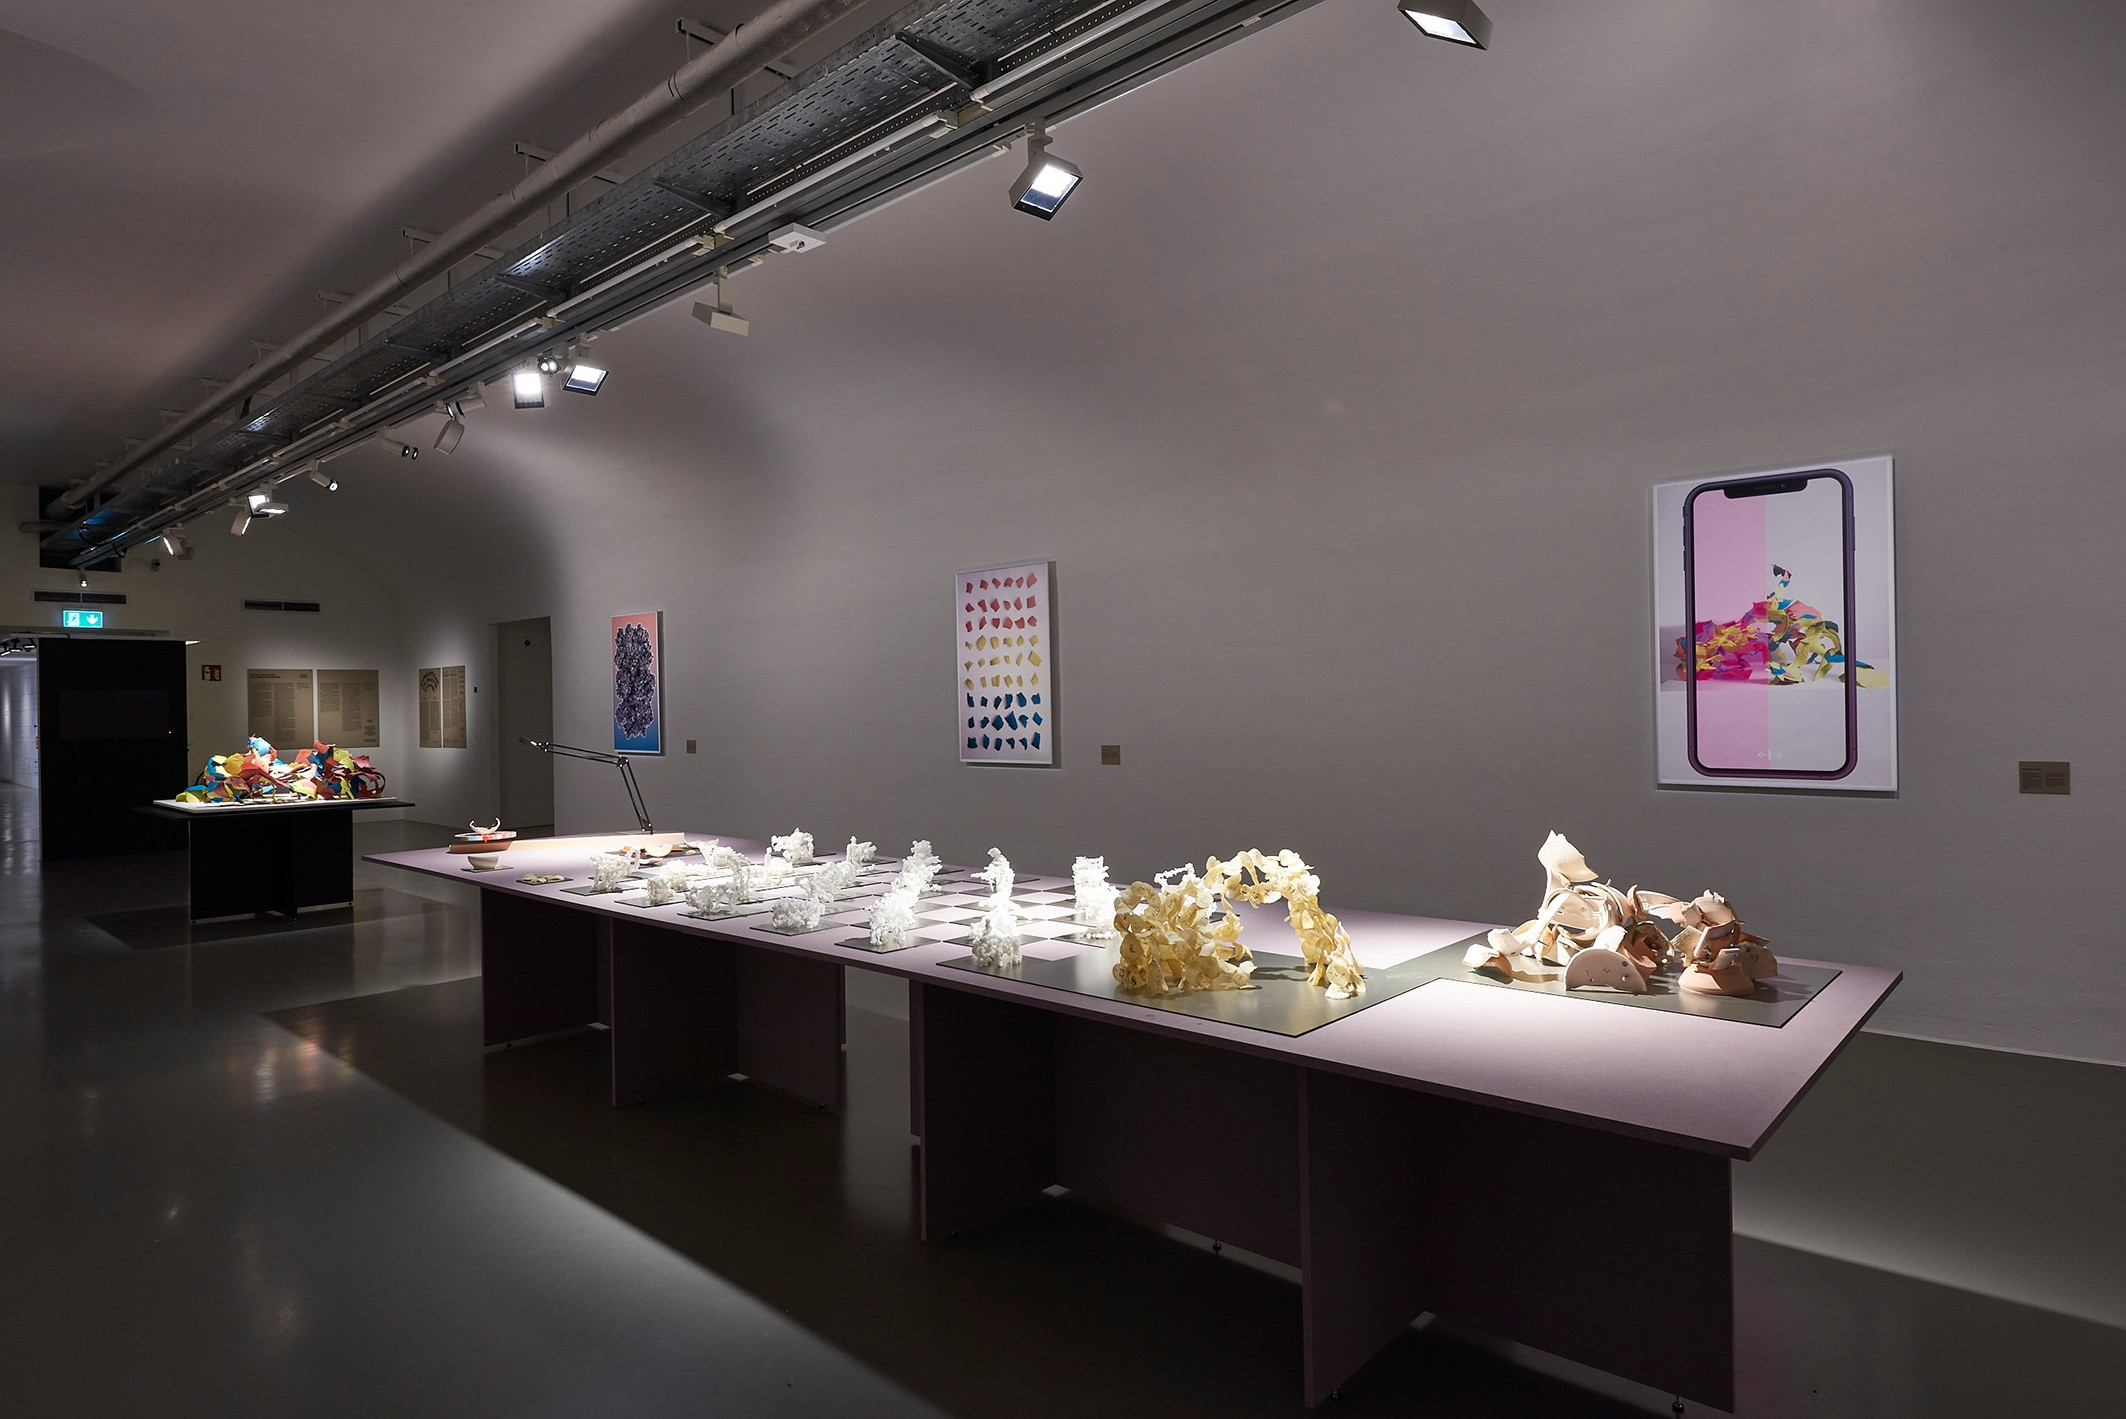 <BODY><div>MAK Exhibition View, 2020</div><div>CREATIVE CLIMATE CARE </div><div>Chien-hua Huang. Reform Standard</div><div>MAK GALLERY</div><div>© MAK/Georg Mayer</div><div> </div></BODY>